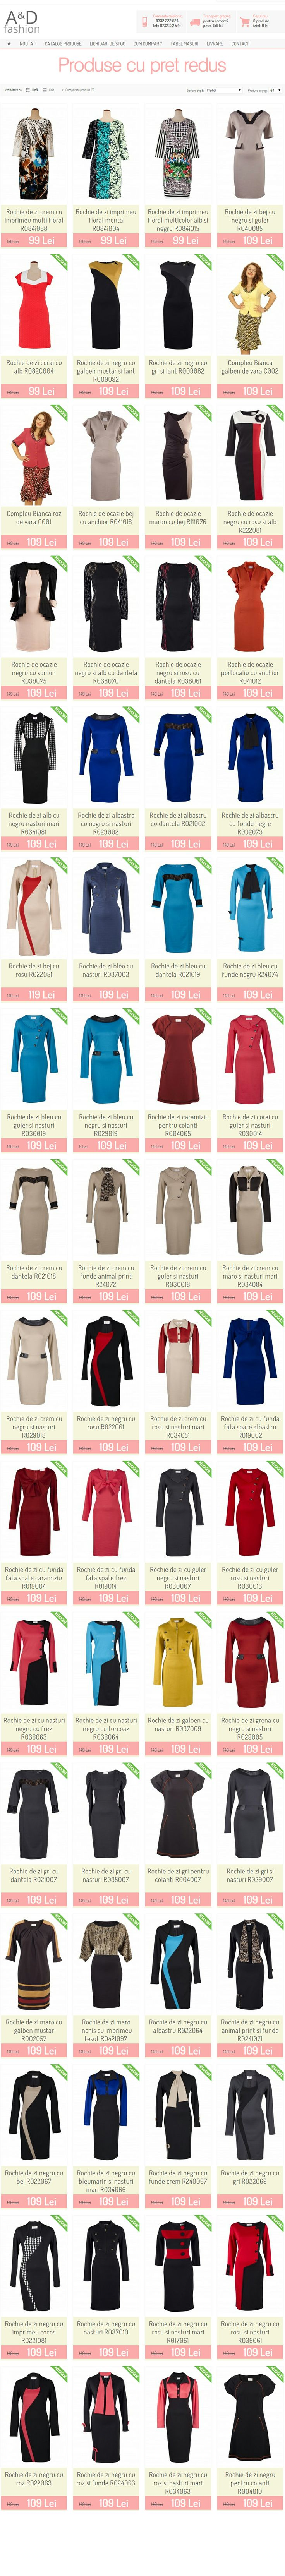 special offers Buy here http://ad-fashion.ro/index.php?route=product/special